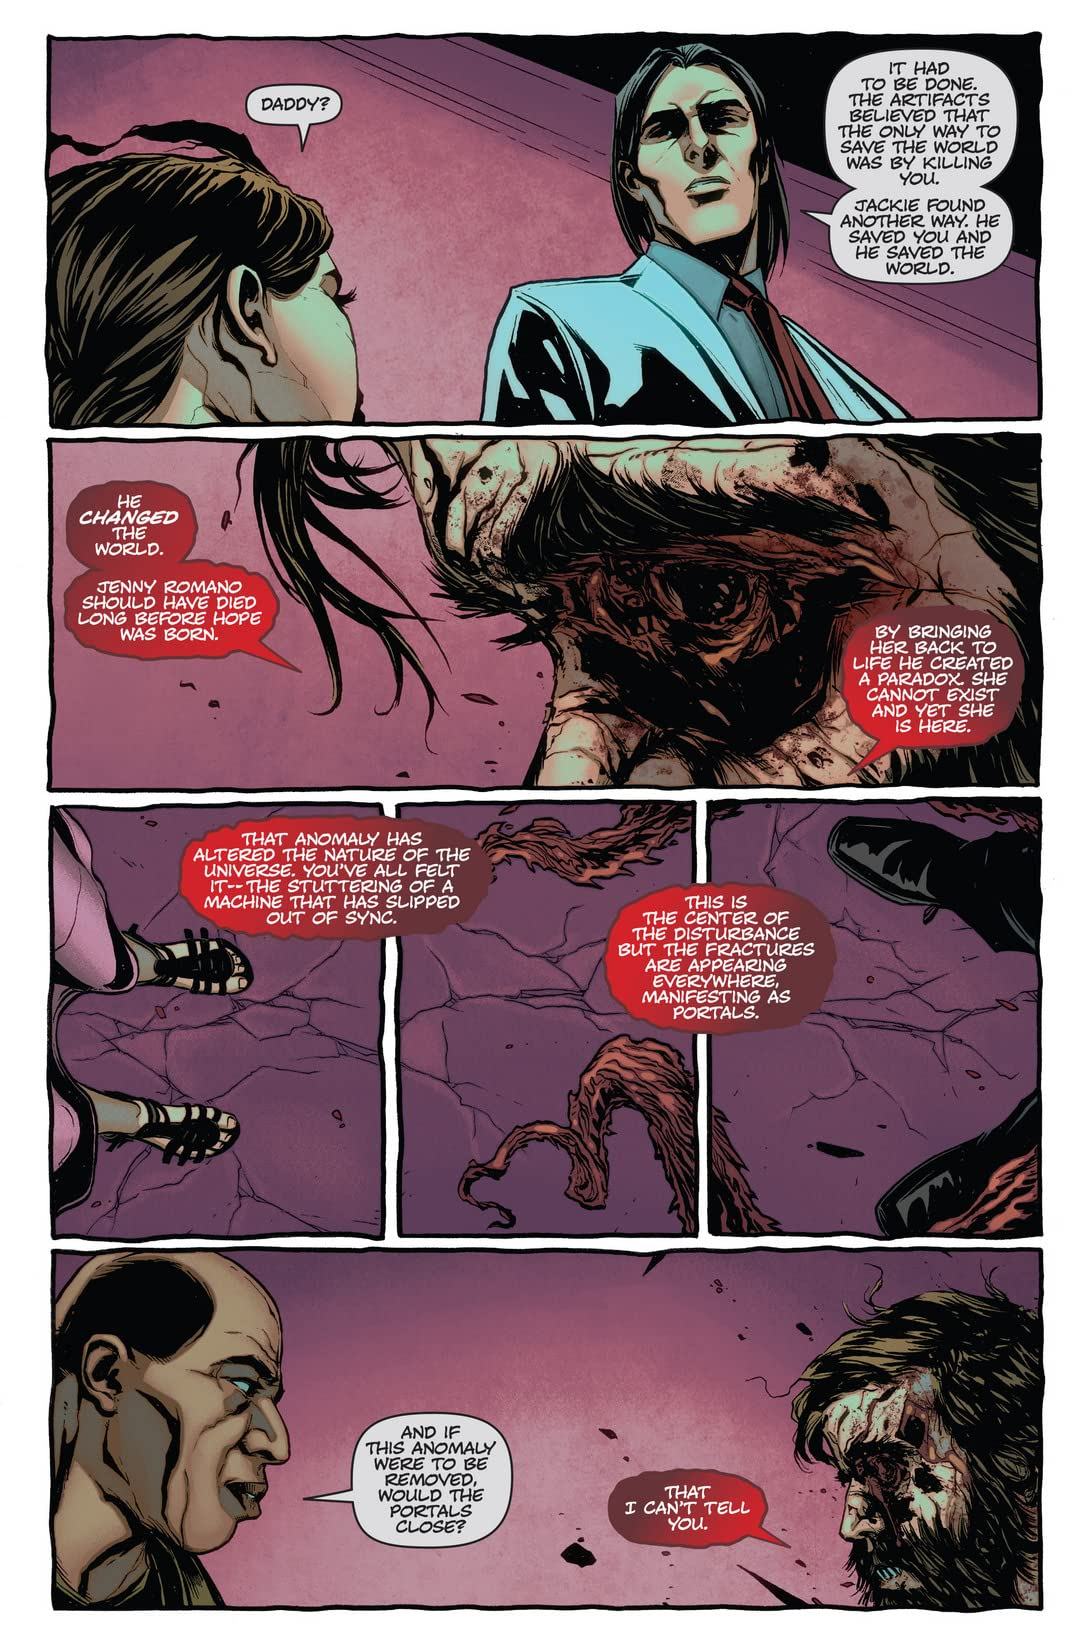 The Darkness #110